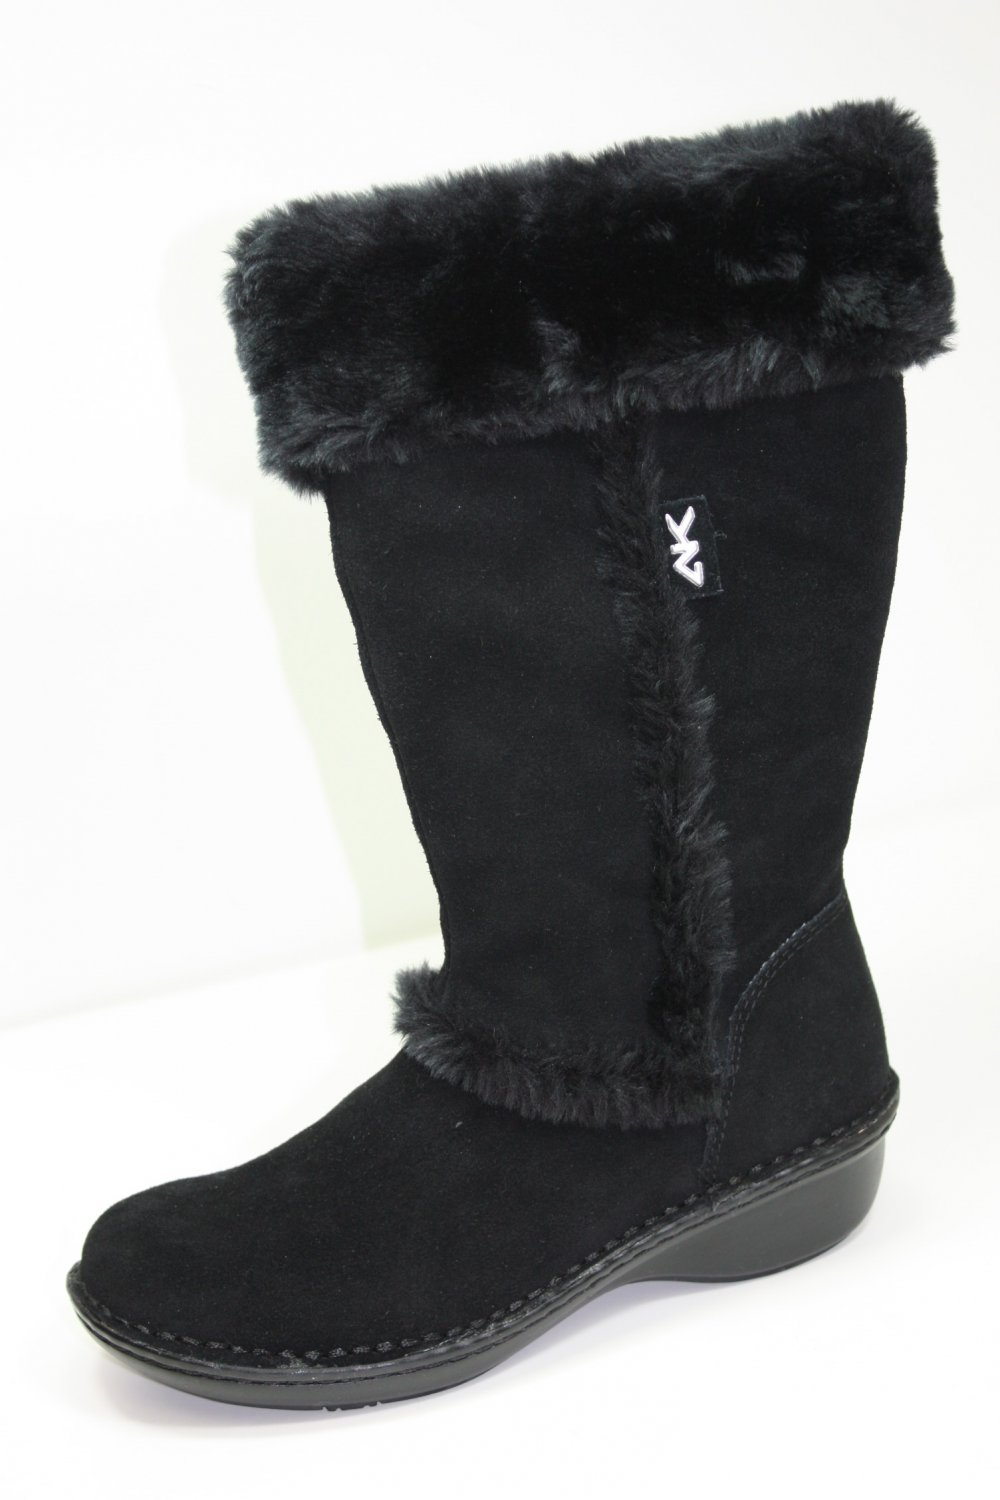 Anne Klein Sport Kanga Boots Black Shoes US 6 $109